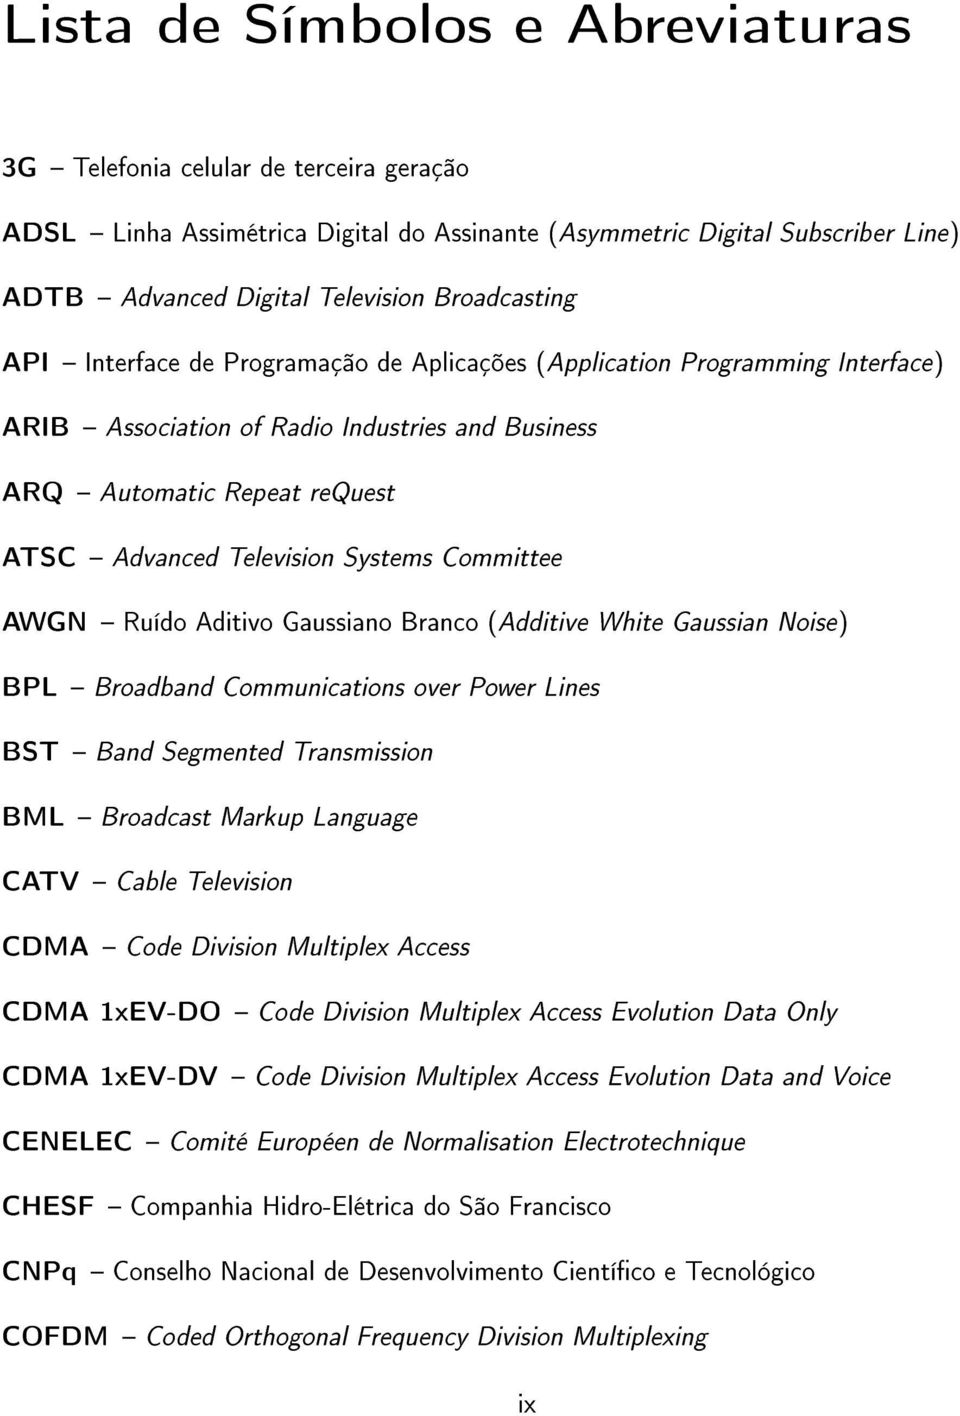 Systems Committee AWGN Ruído Aditivo Gaussiano Branco (Additive White Gaussian Noise) BPL Broadband Communications over Power Lines BST Band Segmented Transmission BML Broadcast Markup Language CATV